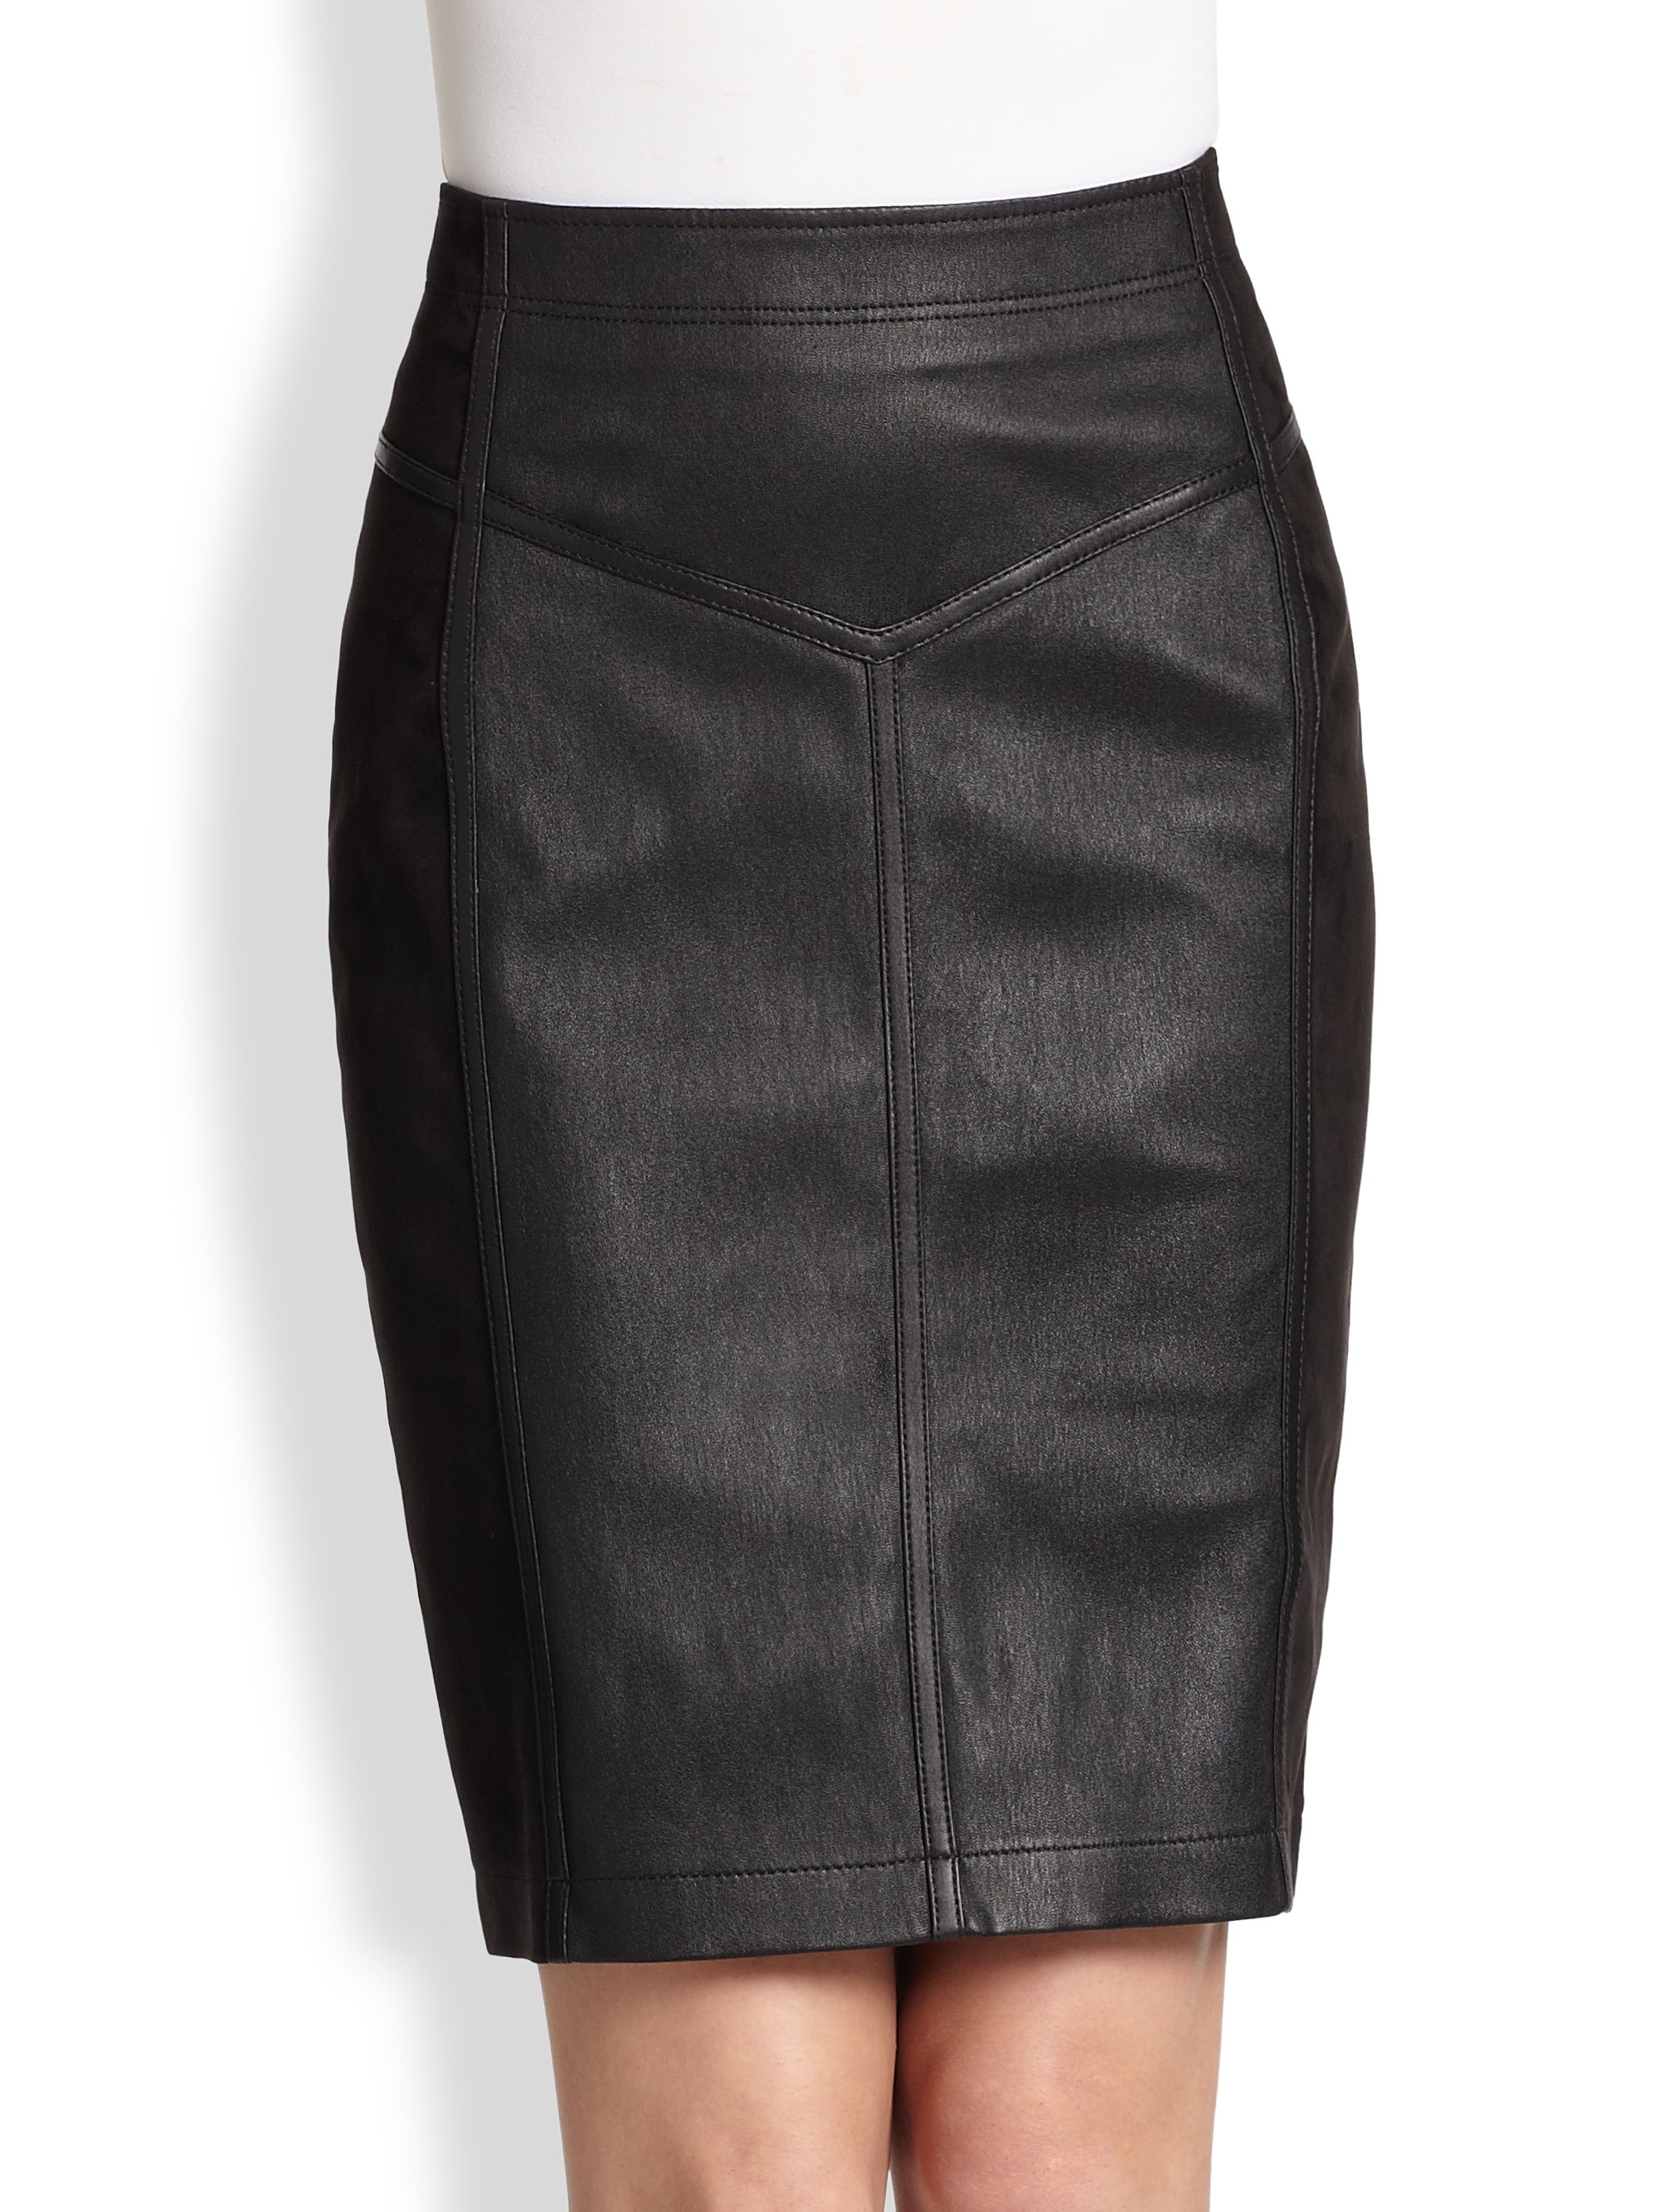 Burberry Brit Leather Suede Skirt in Black | Lyst